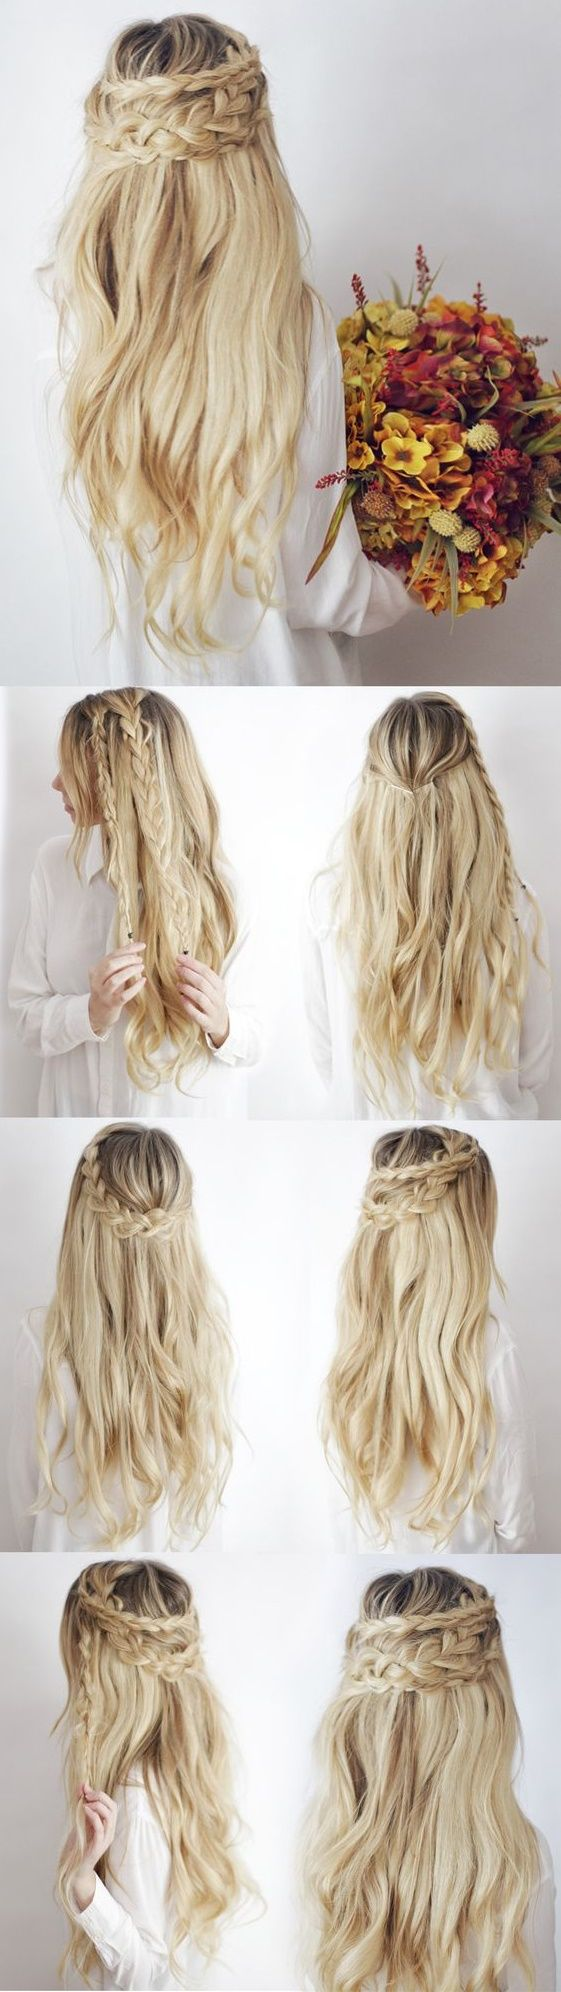 The best images about drawing hair hair on pinterest